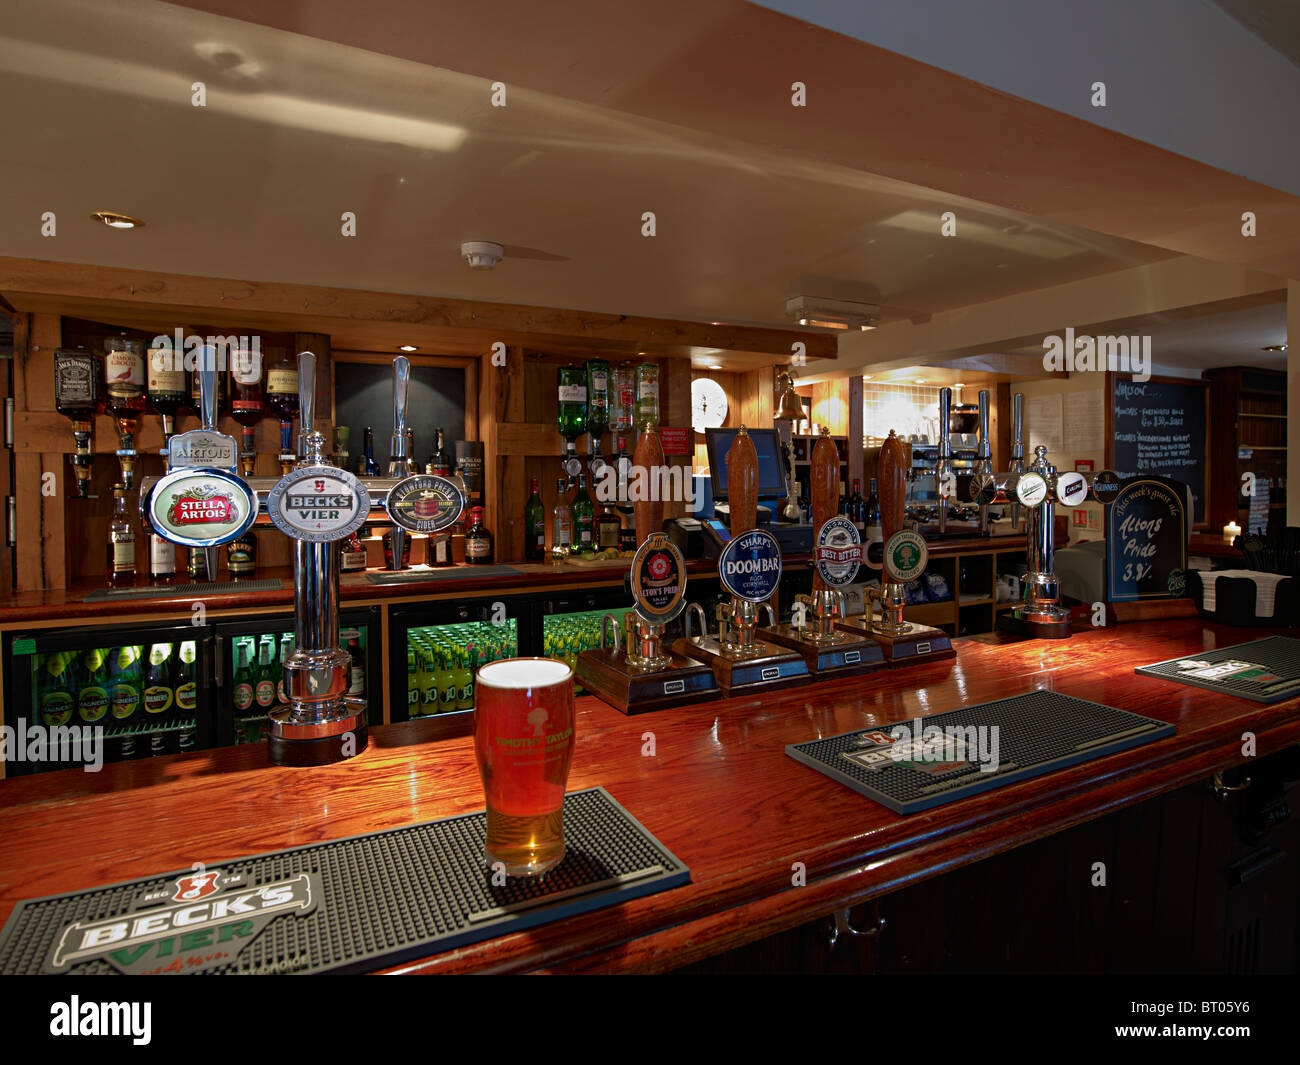 Close up of a bar in an old english pub with bar pumps and optics and a pint of beer in the foreground Stock Photo